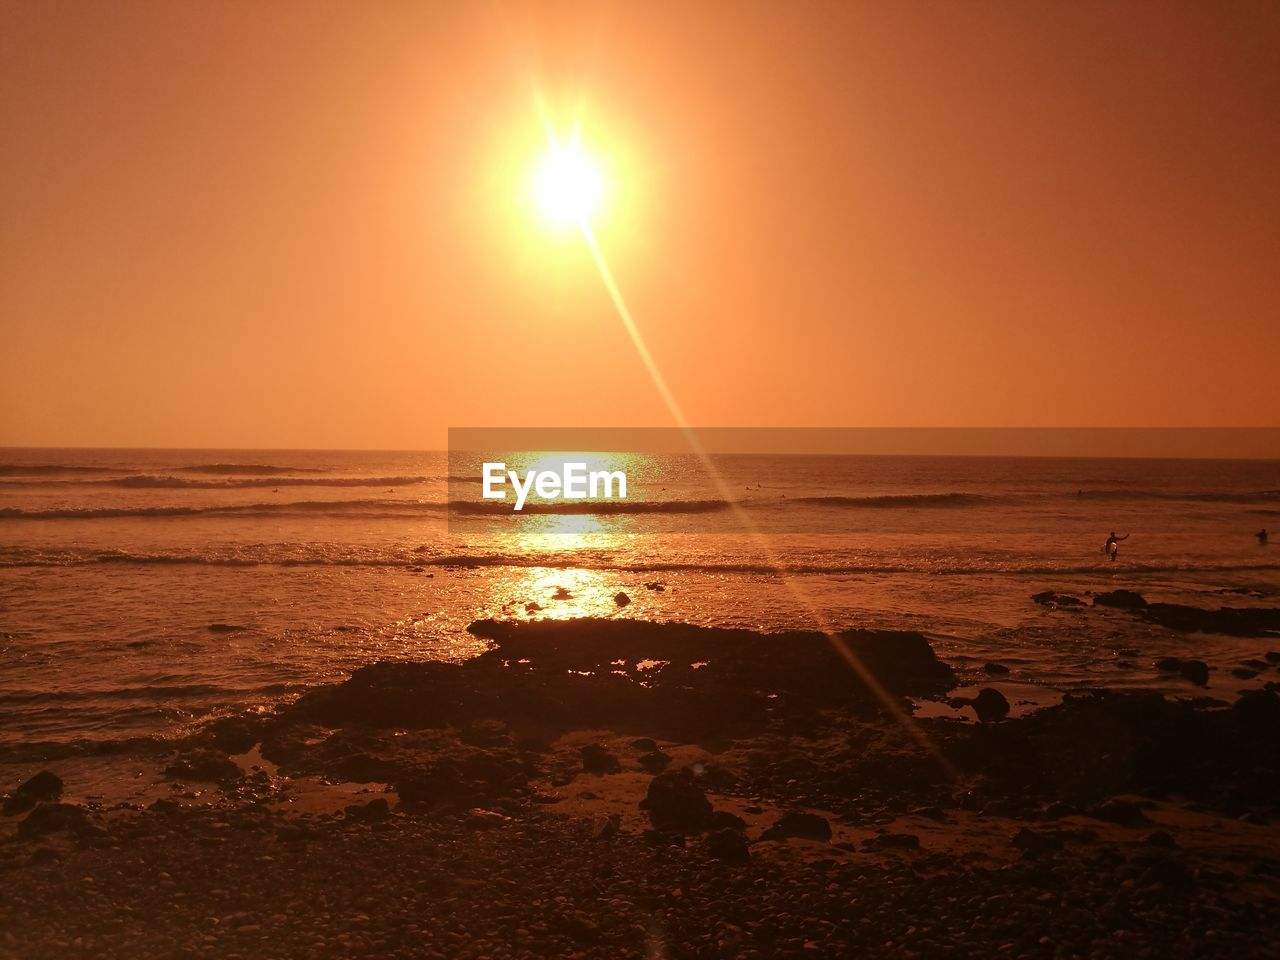 sea, sun, sunset, water, beauty in nature, horizon over water, scenics, nature, tranquil scene, sunlight, tranquility, beach, orange color, sunbeam, idyllic, sky, outdoors, silhouette, reflection, no people, sand, clear sky, day